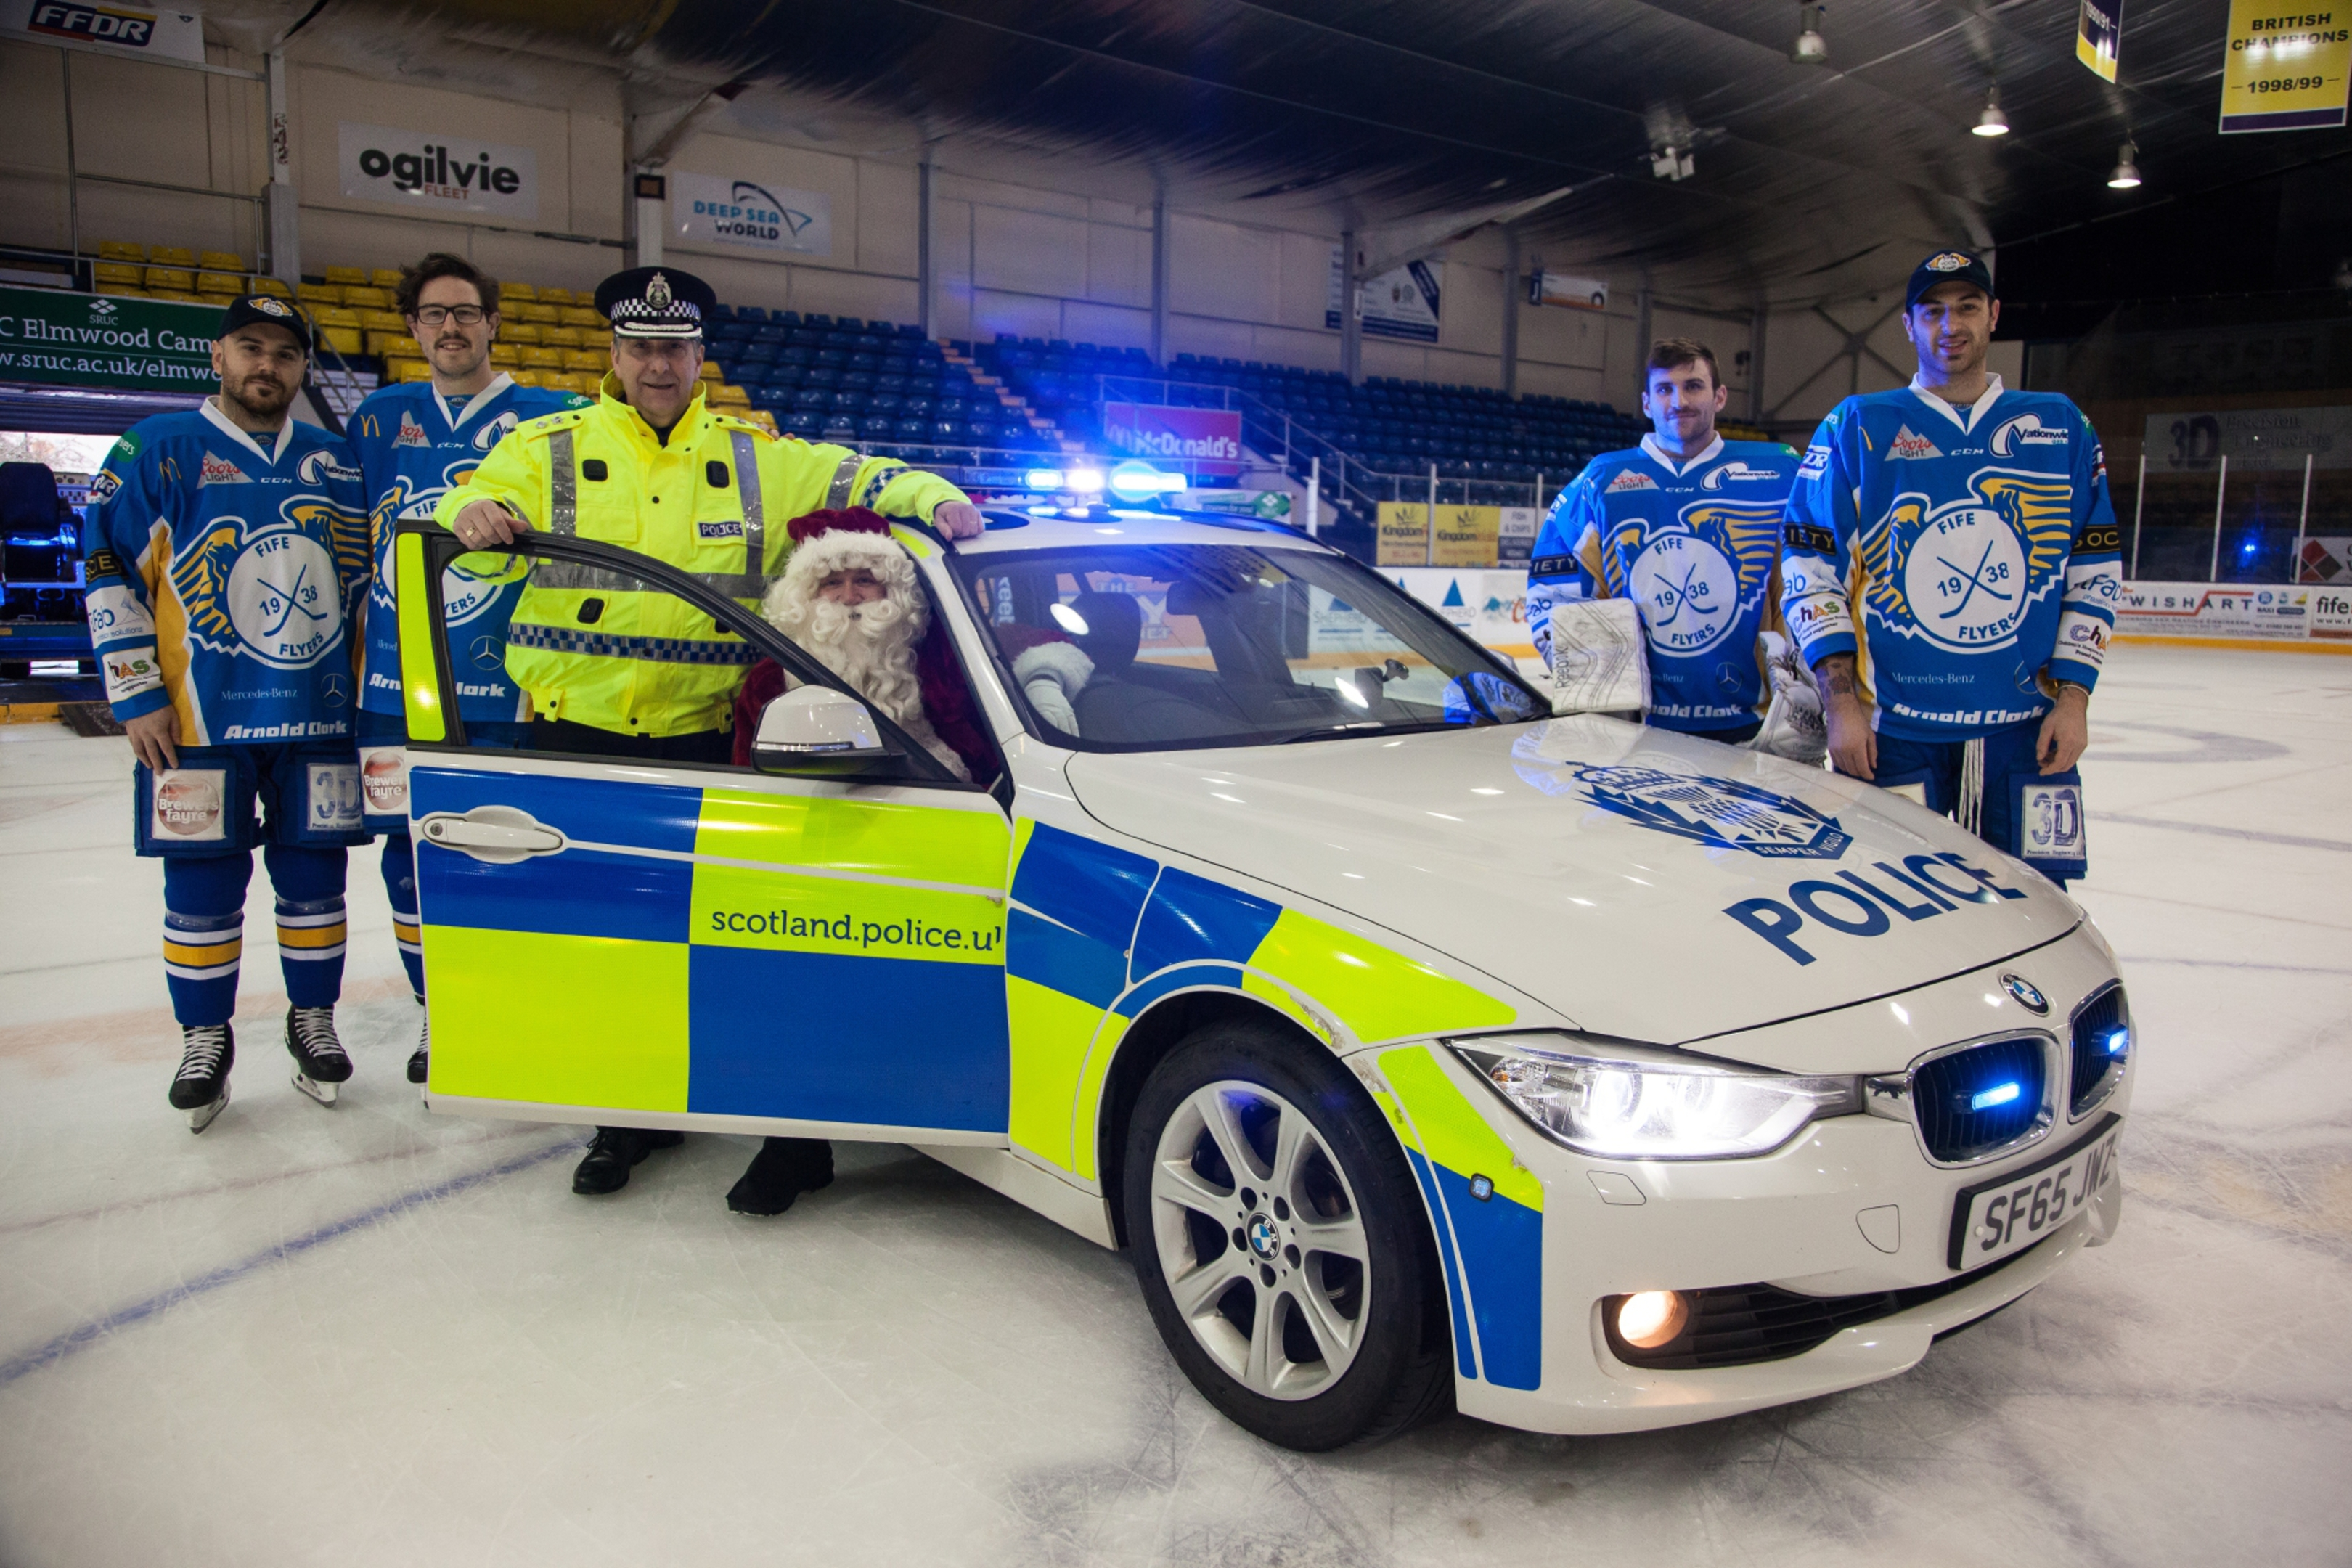 Chief Superintendent Colin Gall, Father Christmas and the Fife Flyers launch the Police Festive Safety campaign.